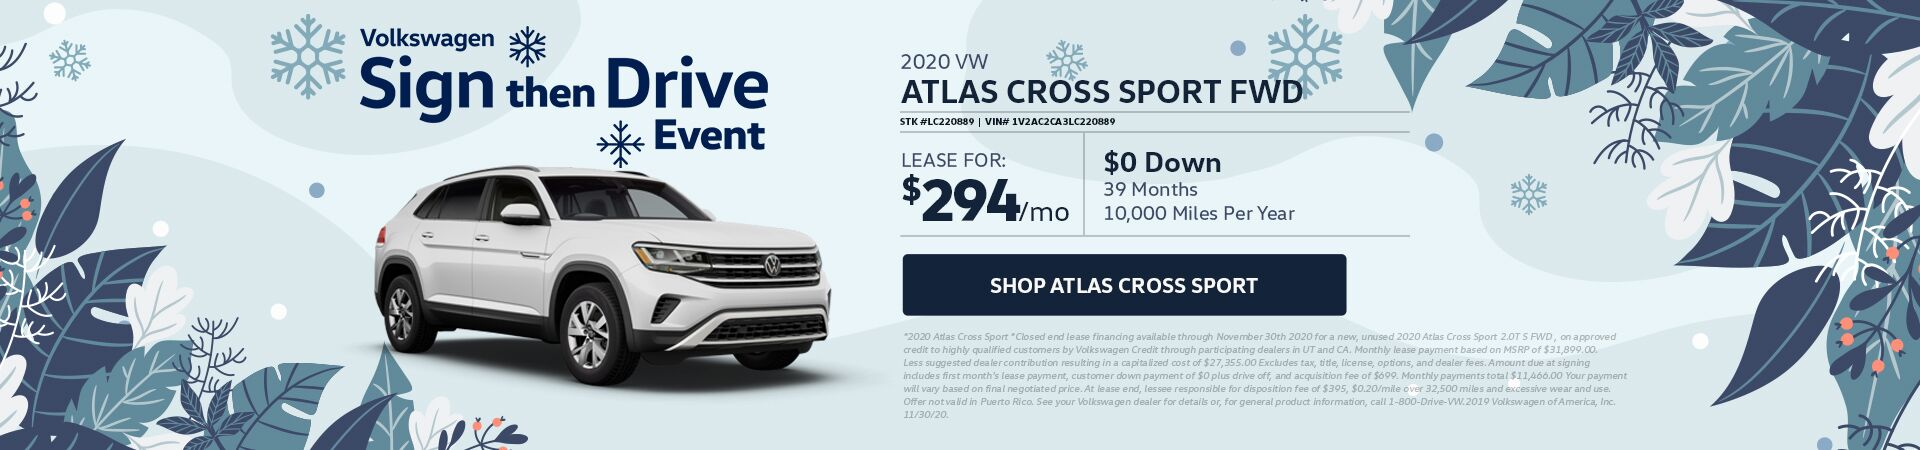 Atlas CrossSport -updated 11.12.20